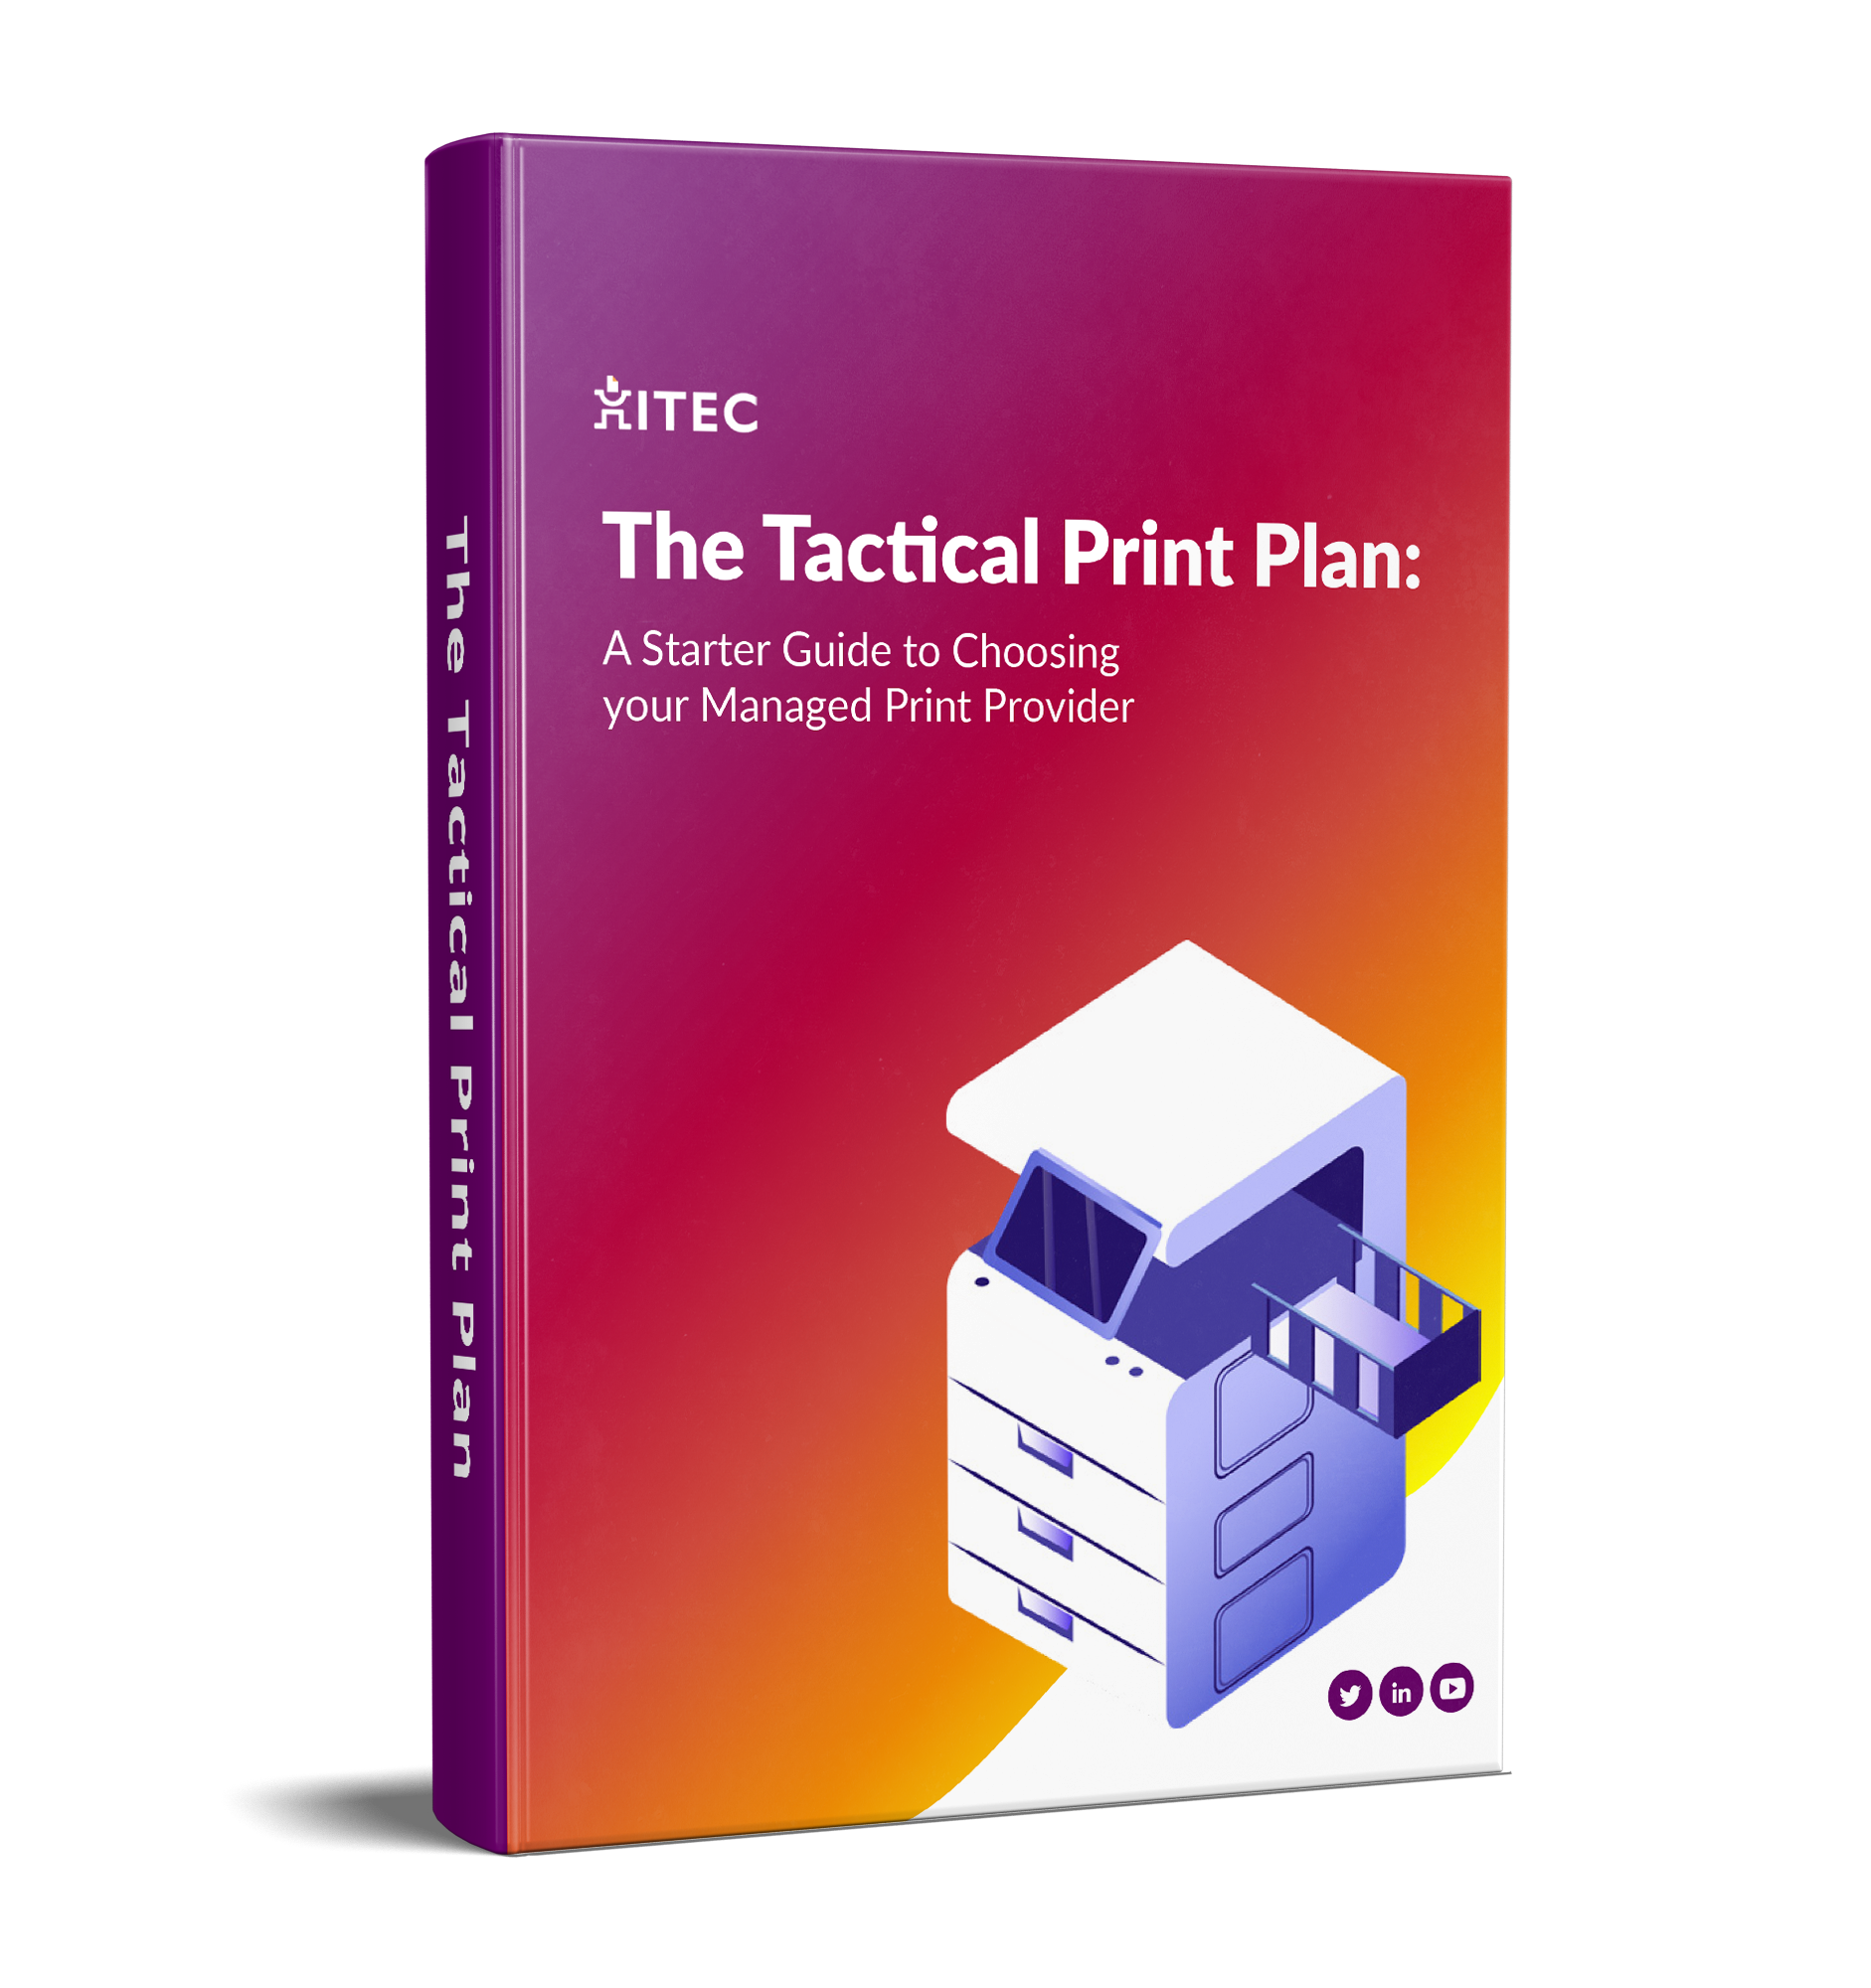 ITEC's Tactical Print Plan